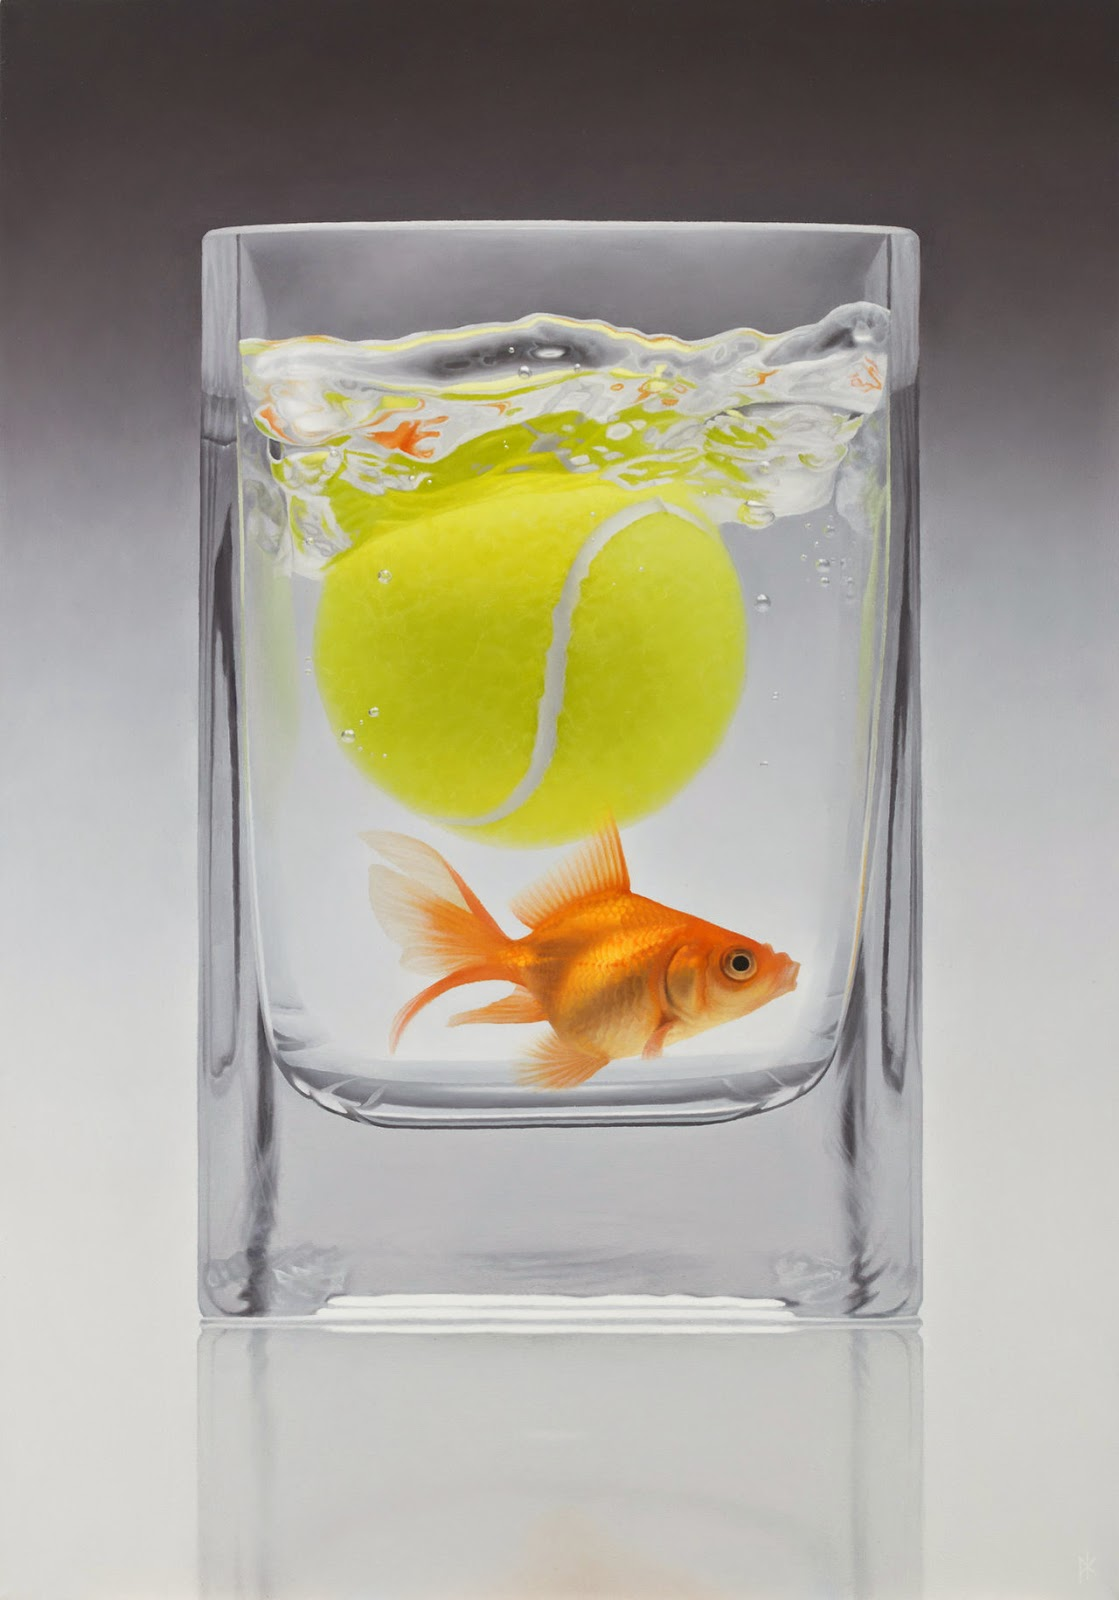 11-Fetch-Patrick-Kramer-Hyper-Realistic-Paintings-www-designstack-co